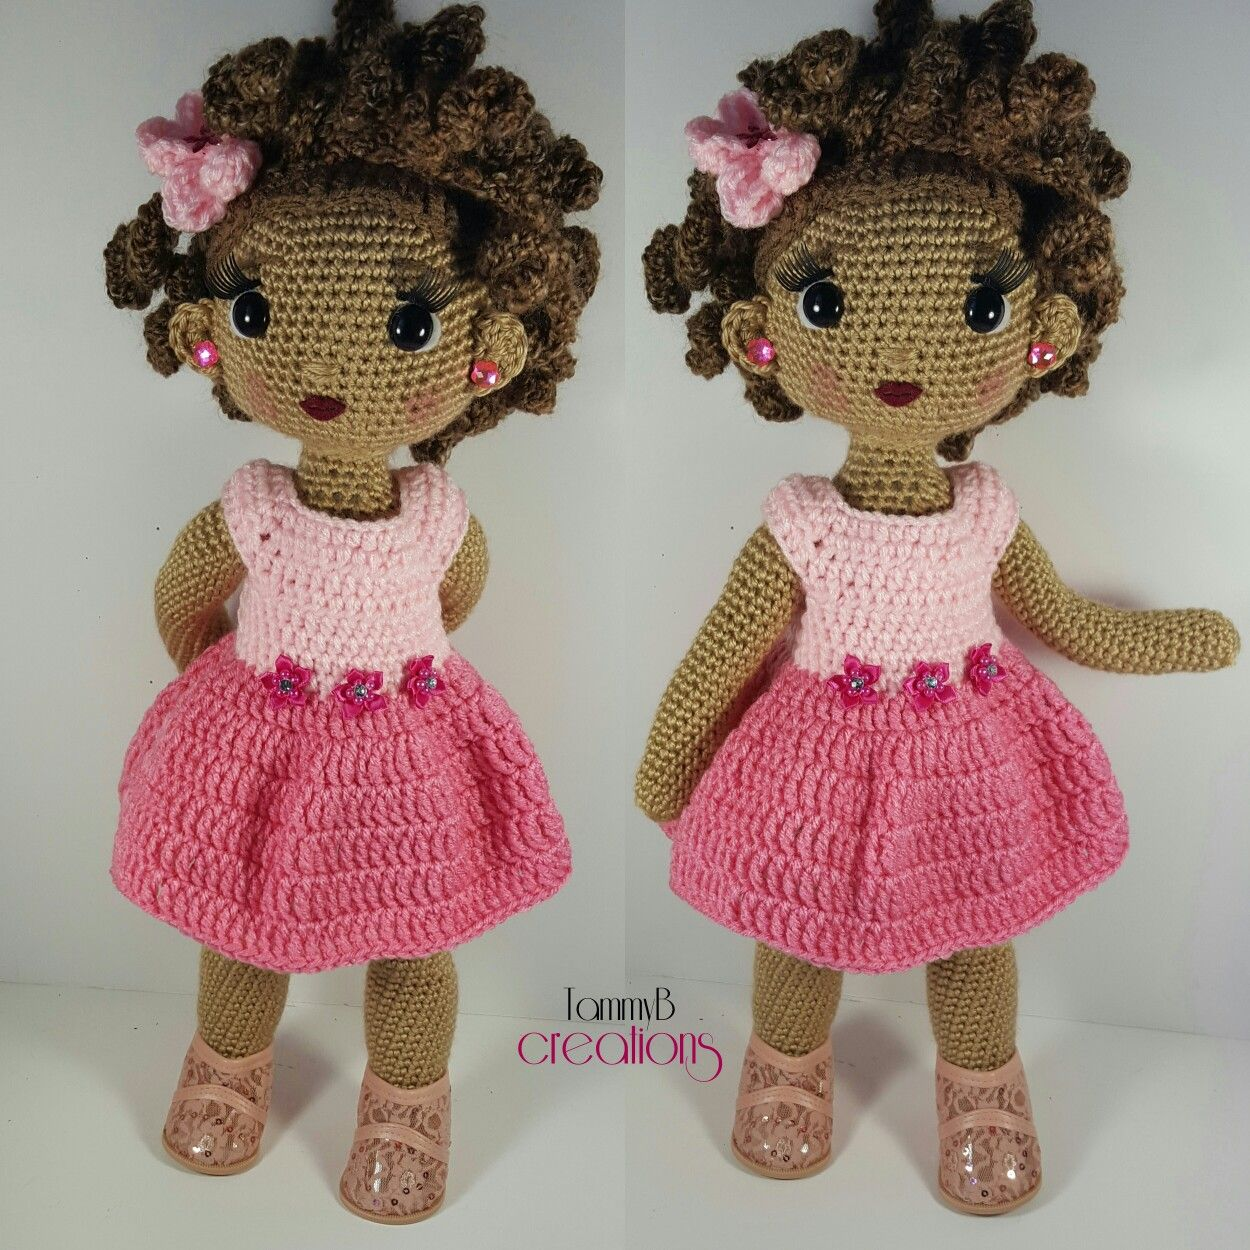 28 Best Amigurumi Doll Designs of March. Different Crochet Doll ... | 1250x1250